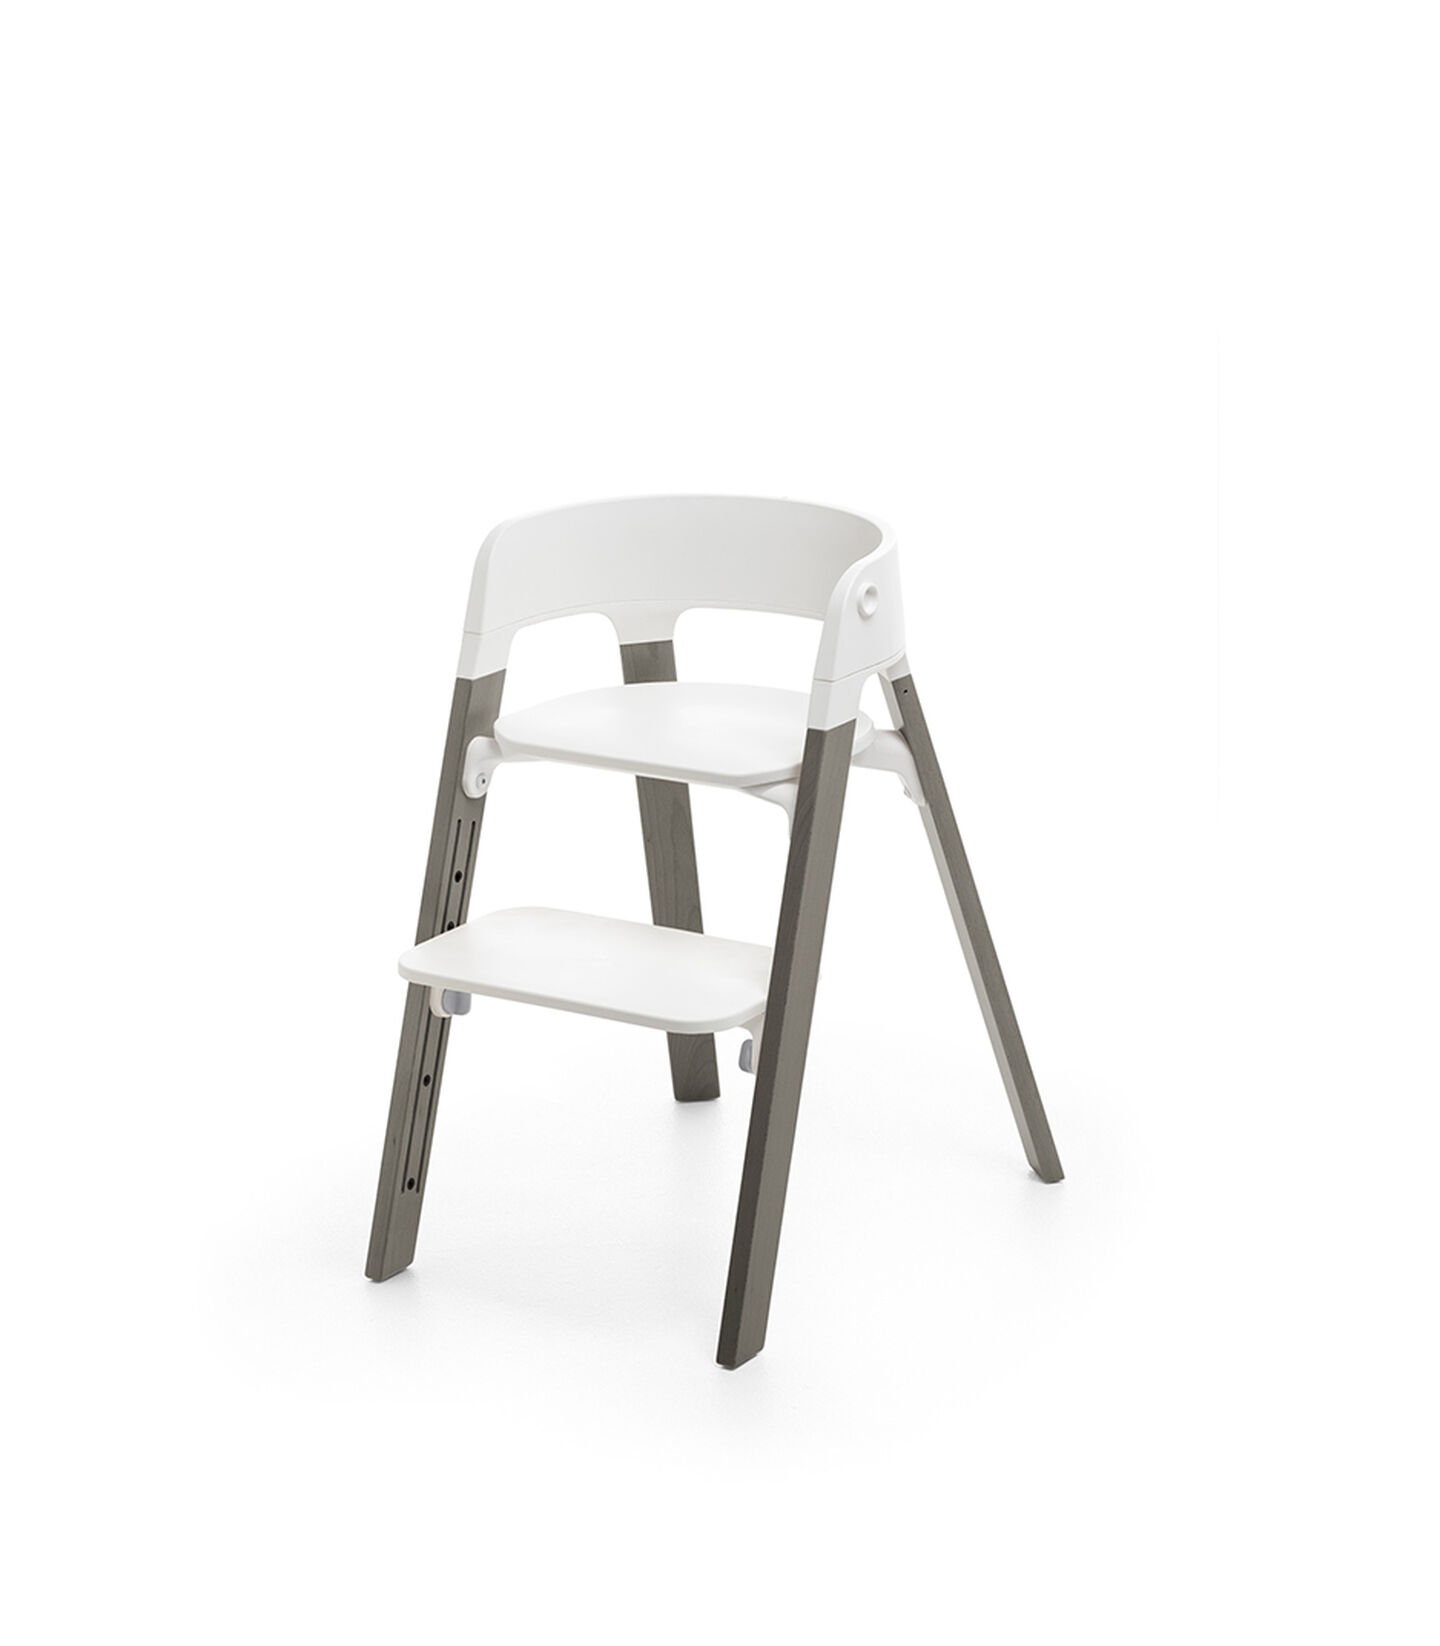 Stokke® Steps™ Chair White Hazy Grey, White/Hazy Grey, mainview view 2